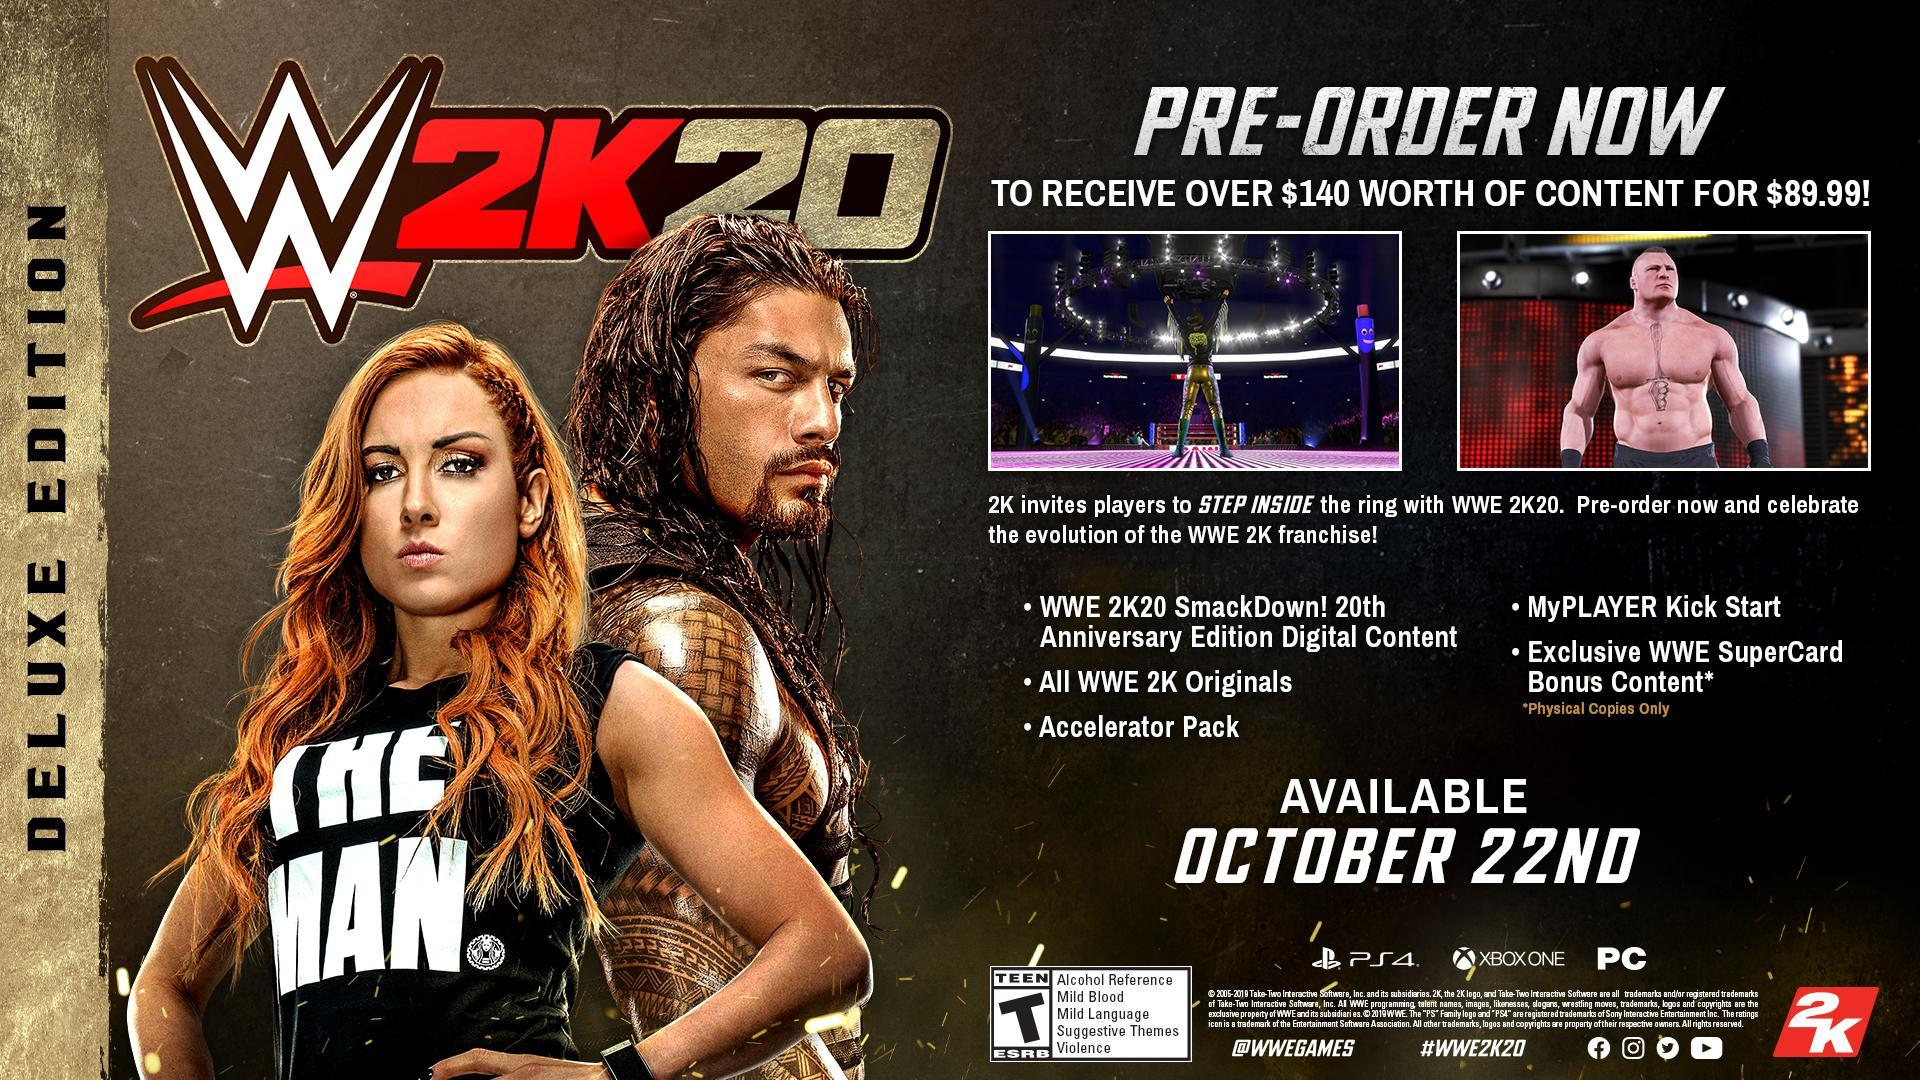 WWE 2K20 DLC Guide: Complete Details on all Downloadable Content and DLC Packs!